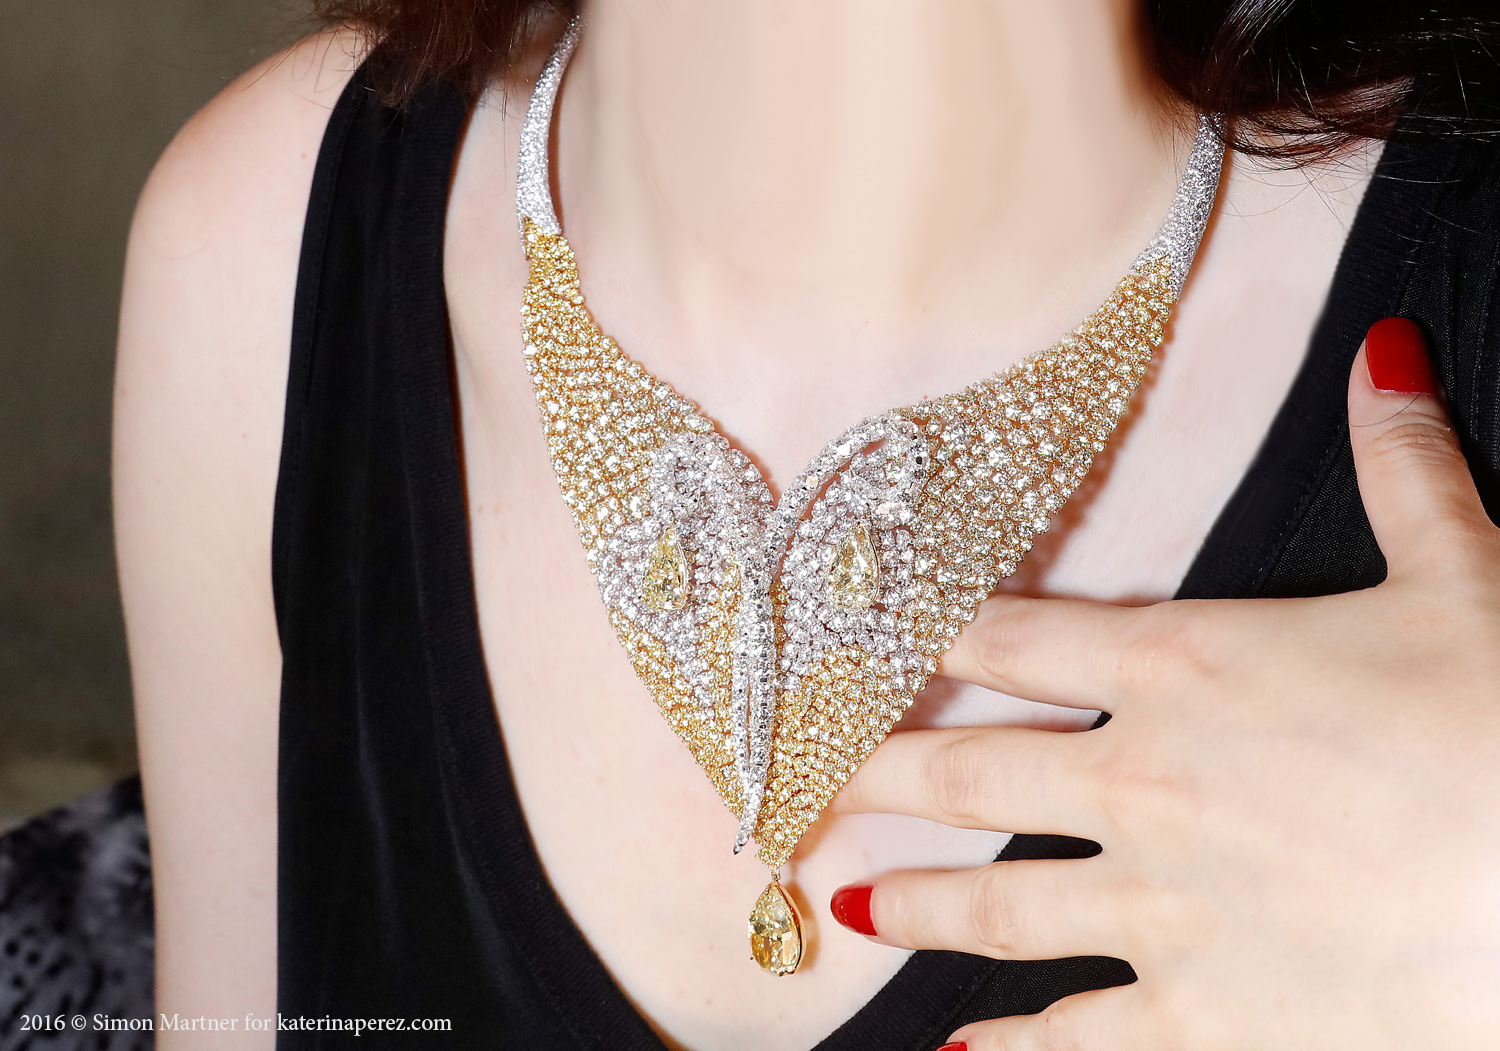 Boghossian Mesh necklace with over 140 cts of colourless and yellow diamonds